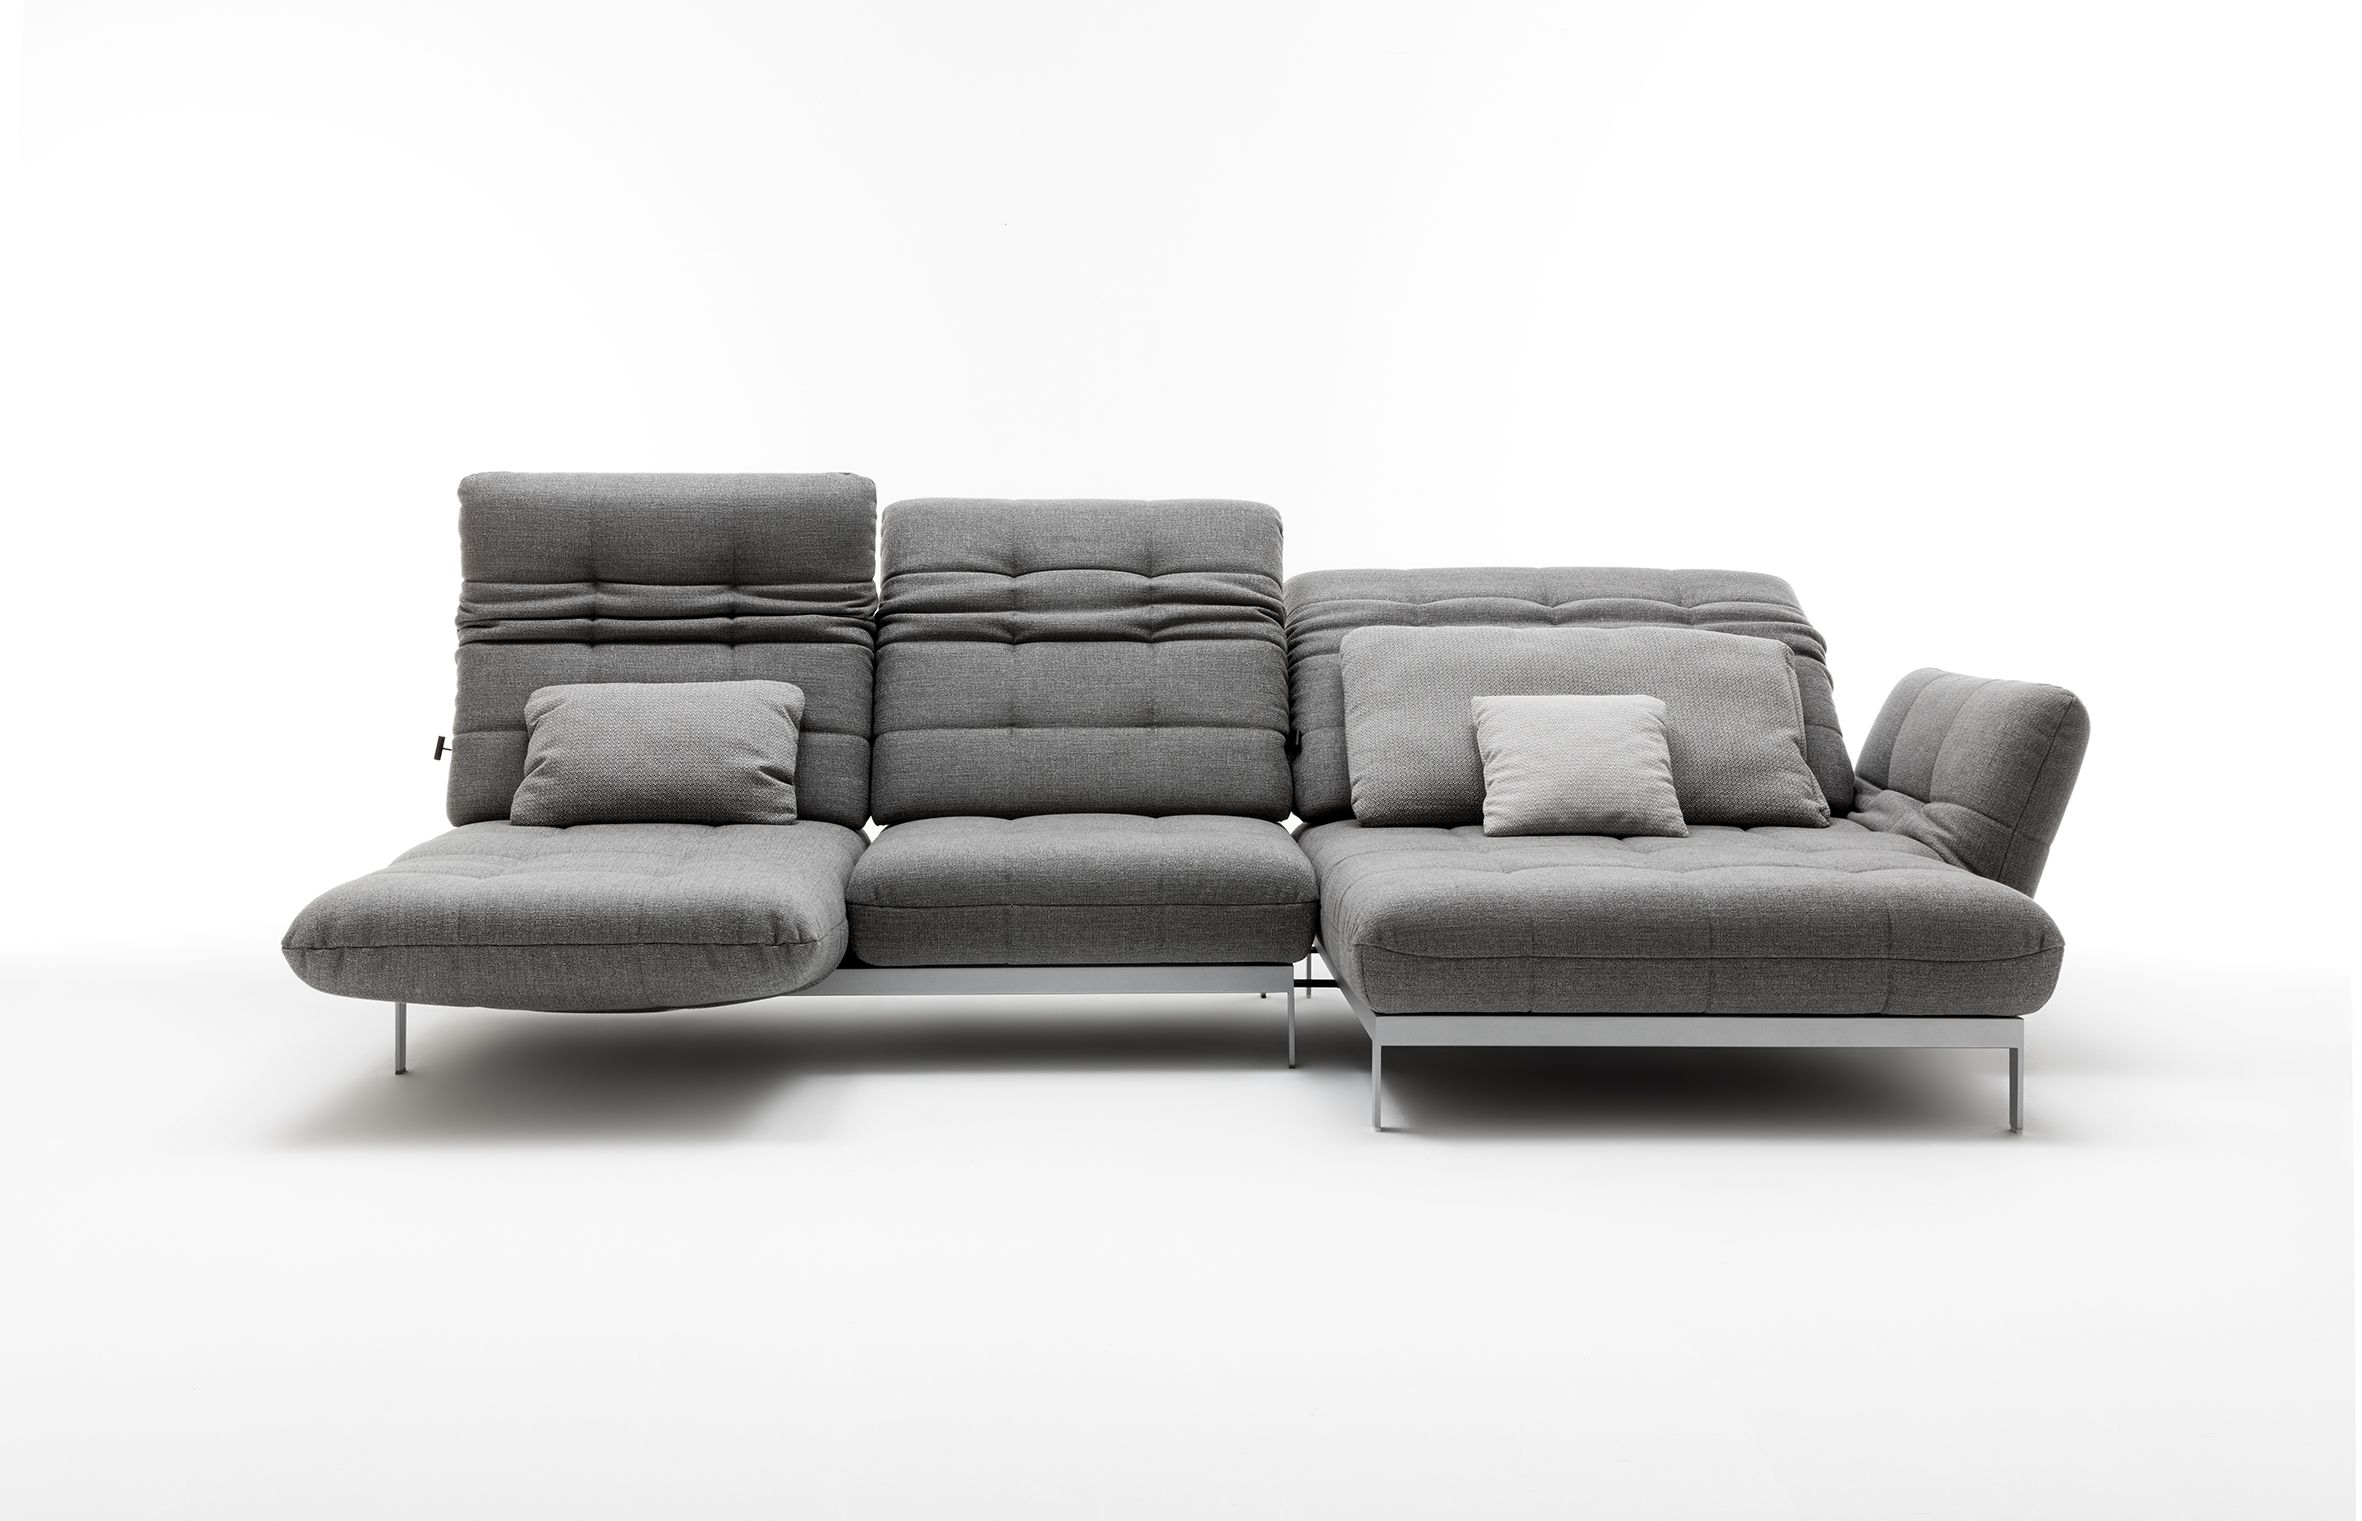 comfortable rolf benz sofa. Recline, Relax, Lay-back In The Rolf Benz AGIO Sofa Bed. Comfortable L